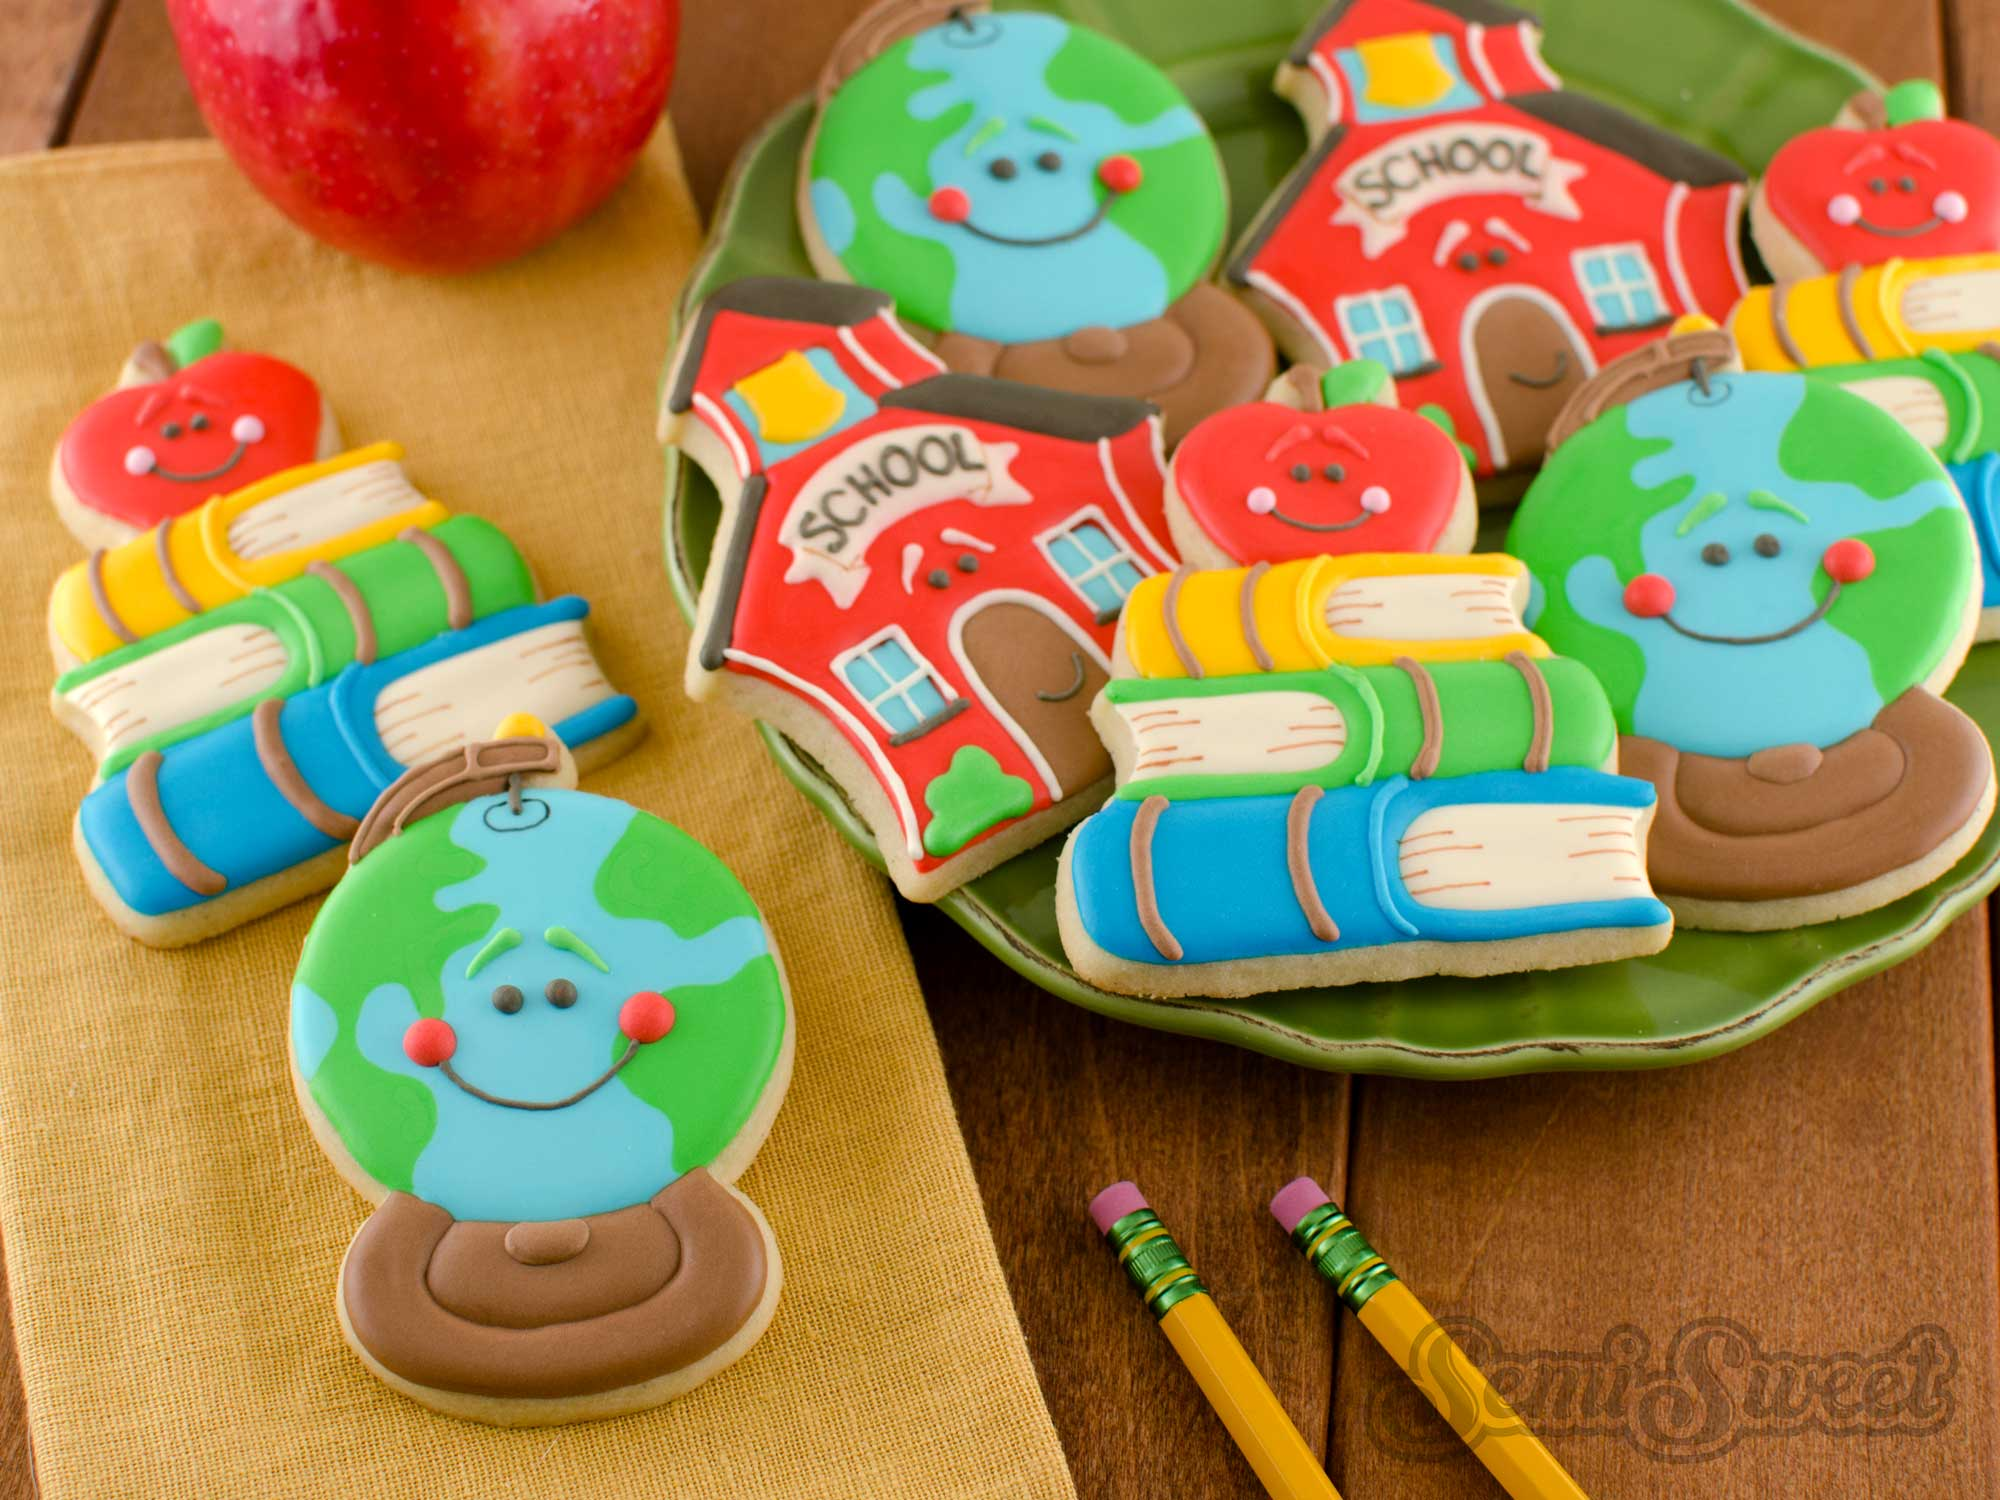 How to Make Schoolhouse Globe Cookies